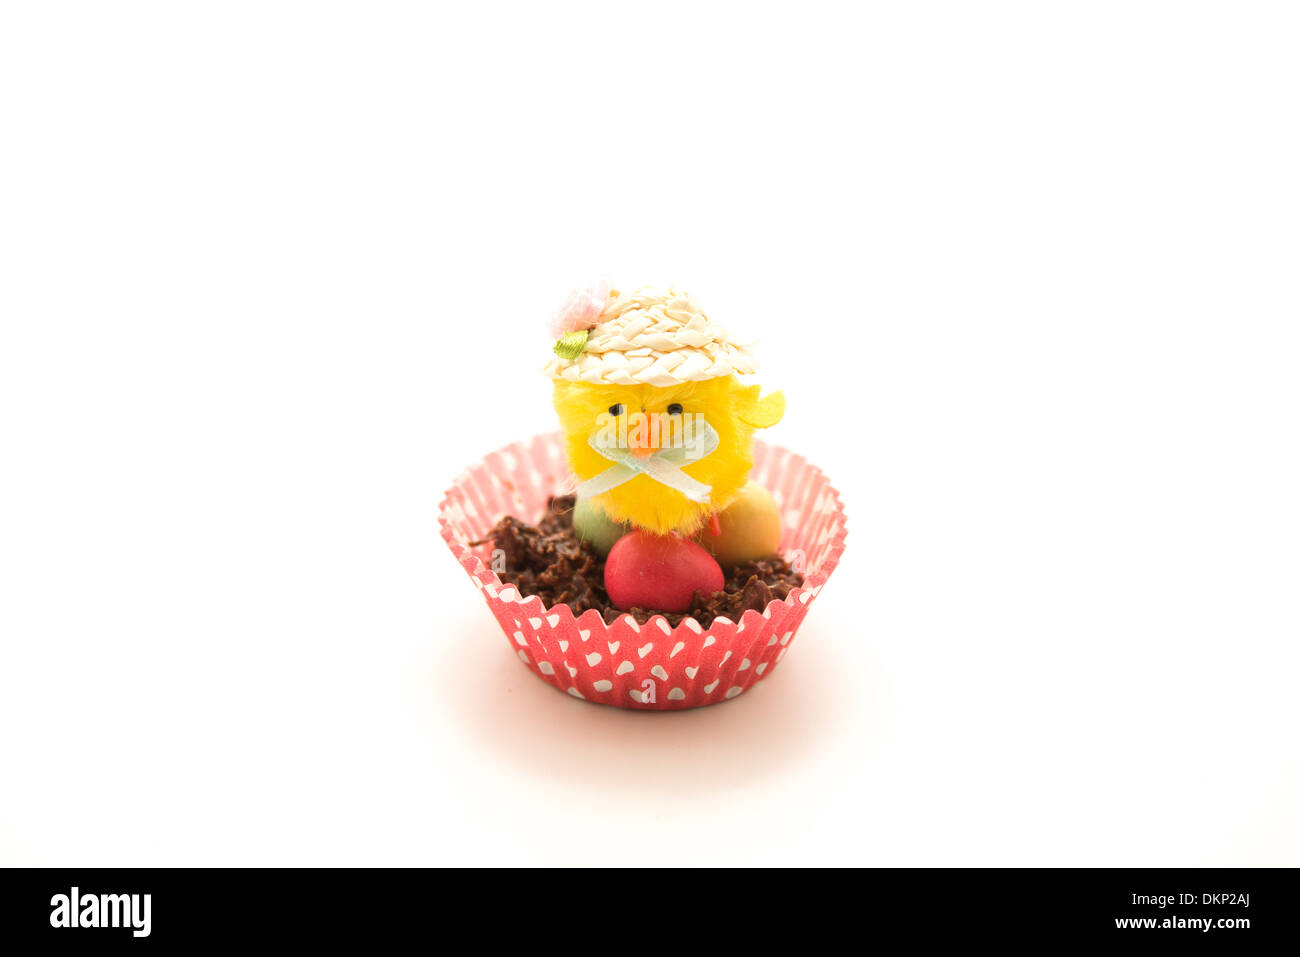 Little Yellow Easter Chick Toy sitting on a Chocolate Egg nest - Stock Image